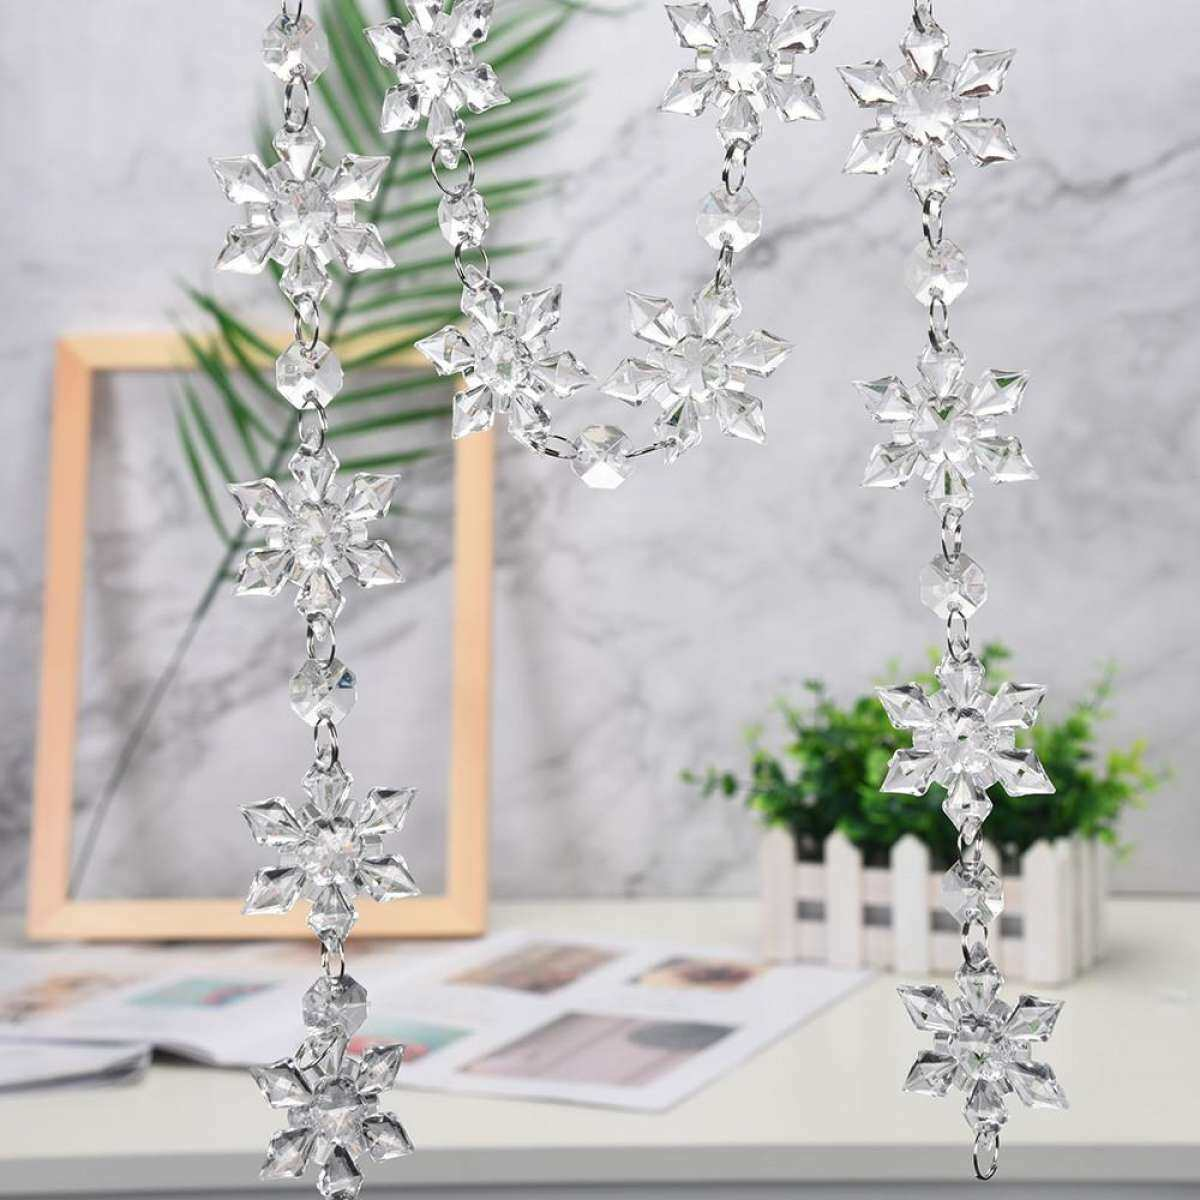 Bnenesmont Acrylic Snowflake Christmas Wedding Tree Hanging Decoration Decoration For Diy P Christmas Tree Decorations Set 2020 New Popular On Sale Lazada